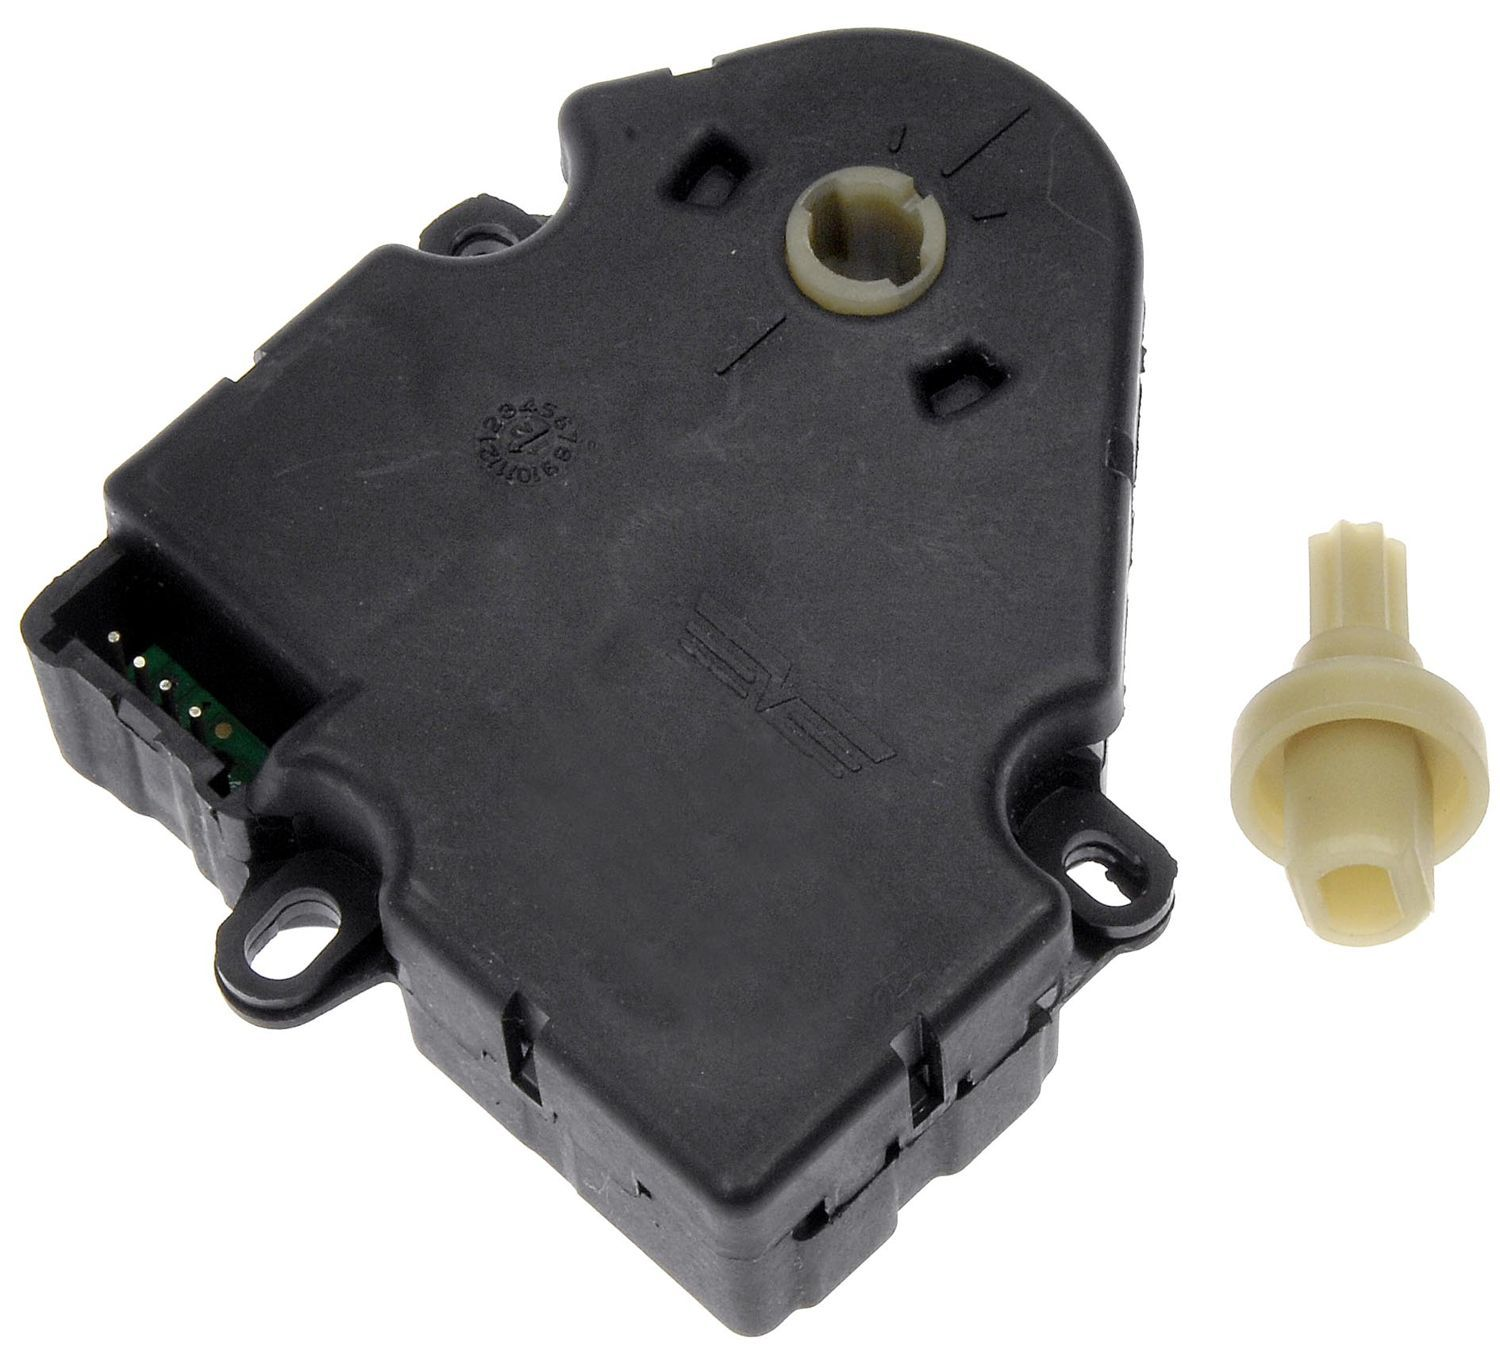 1999 Jeep Cherokee HVAC Heater Blend Door Actuator - N/A (Dorman 604-020)  sc 1 st  Go-Parts : heater door - pezcame.com